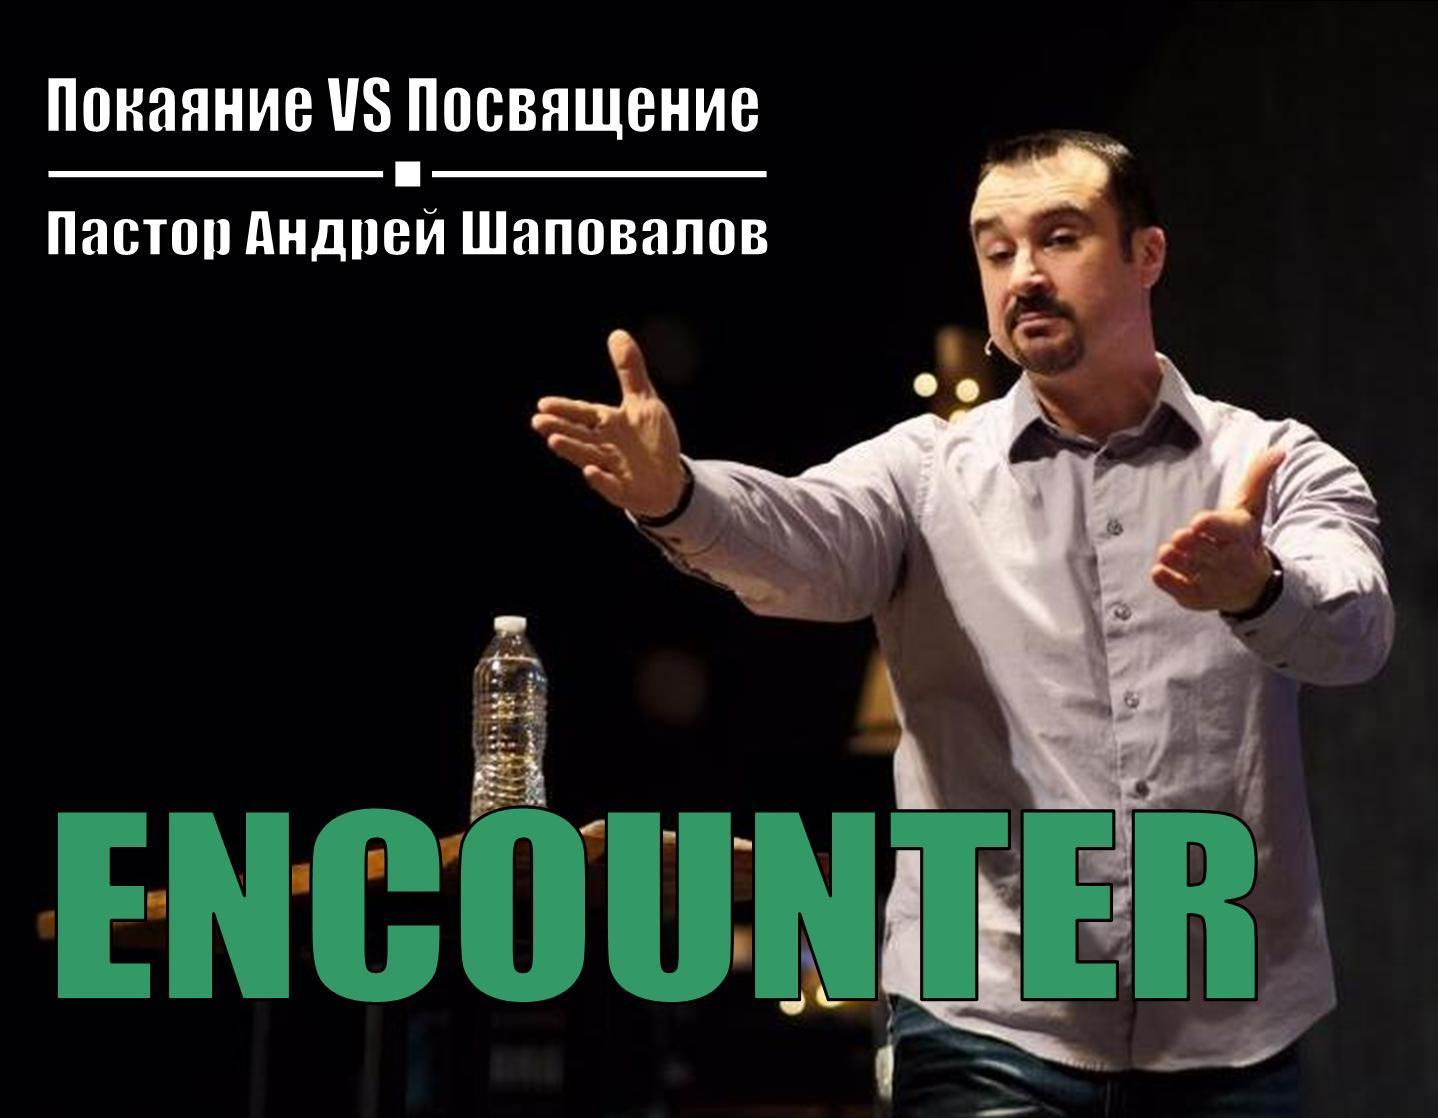 Пастор Андрей Шаповалов «Покаяние vs Посвящение» (ENCOUNTER) (02/26/21)